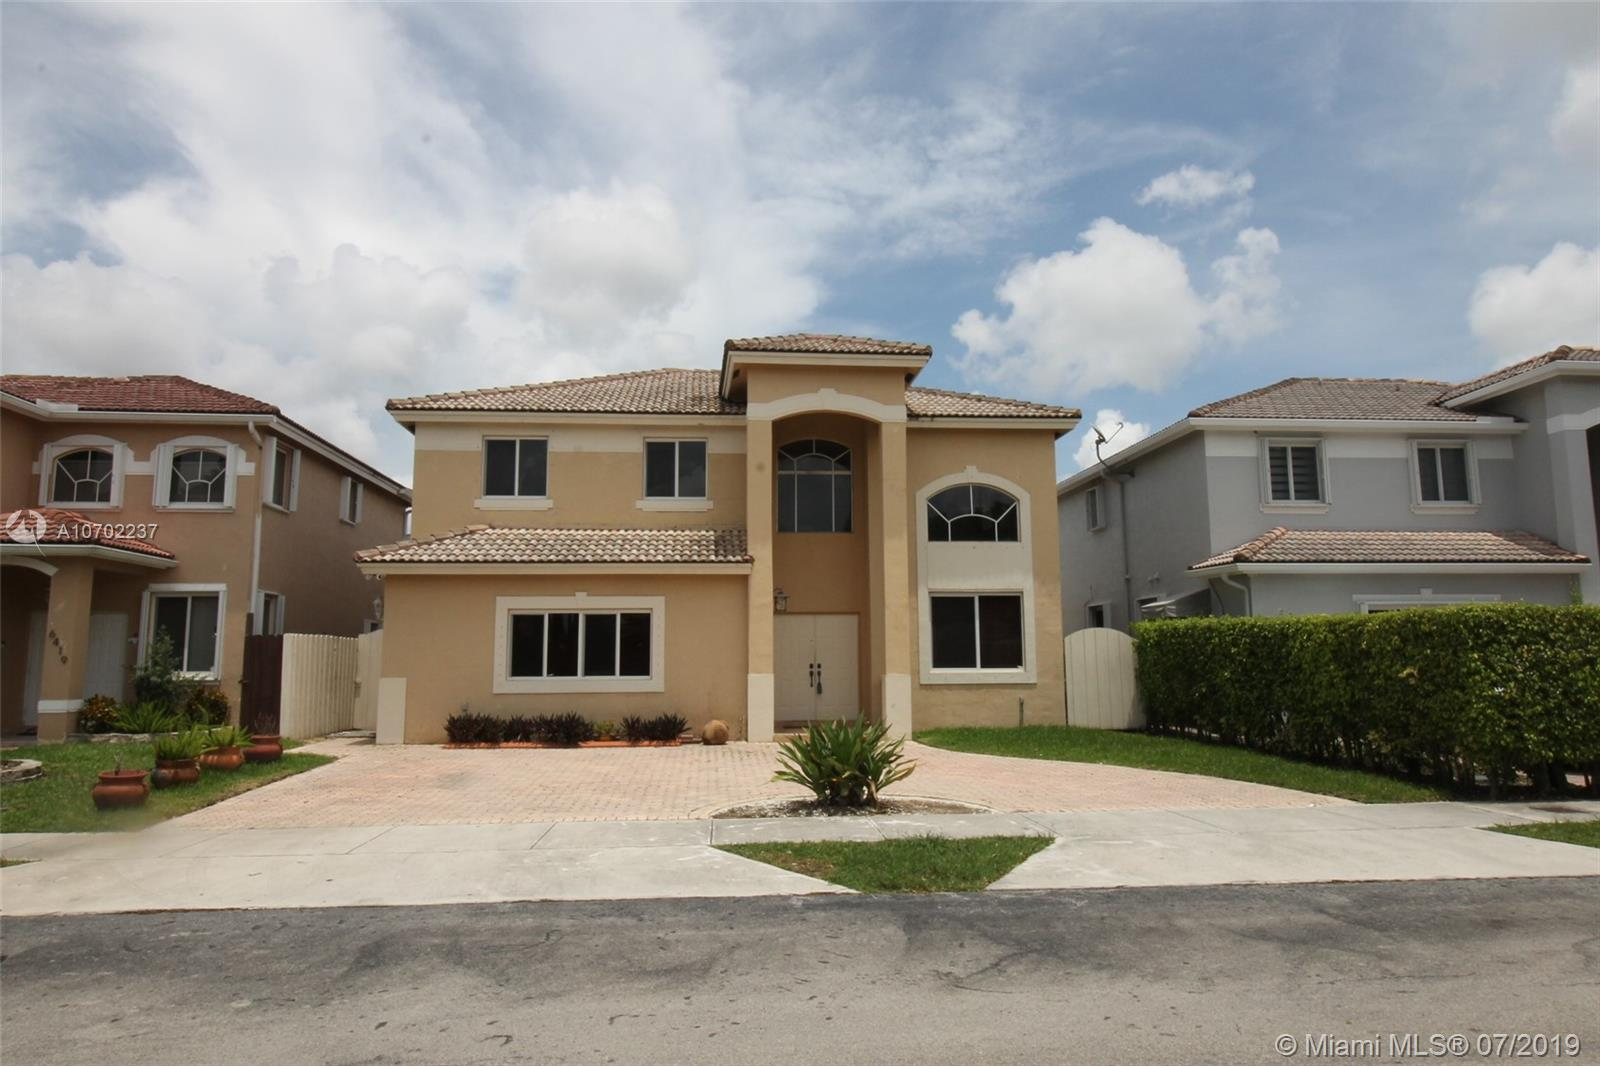 6437 SW 158th Pass, Kendall West, Florida